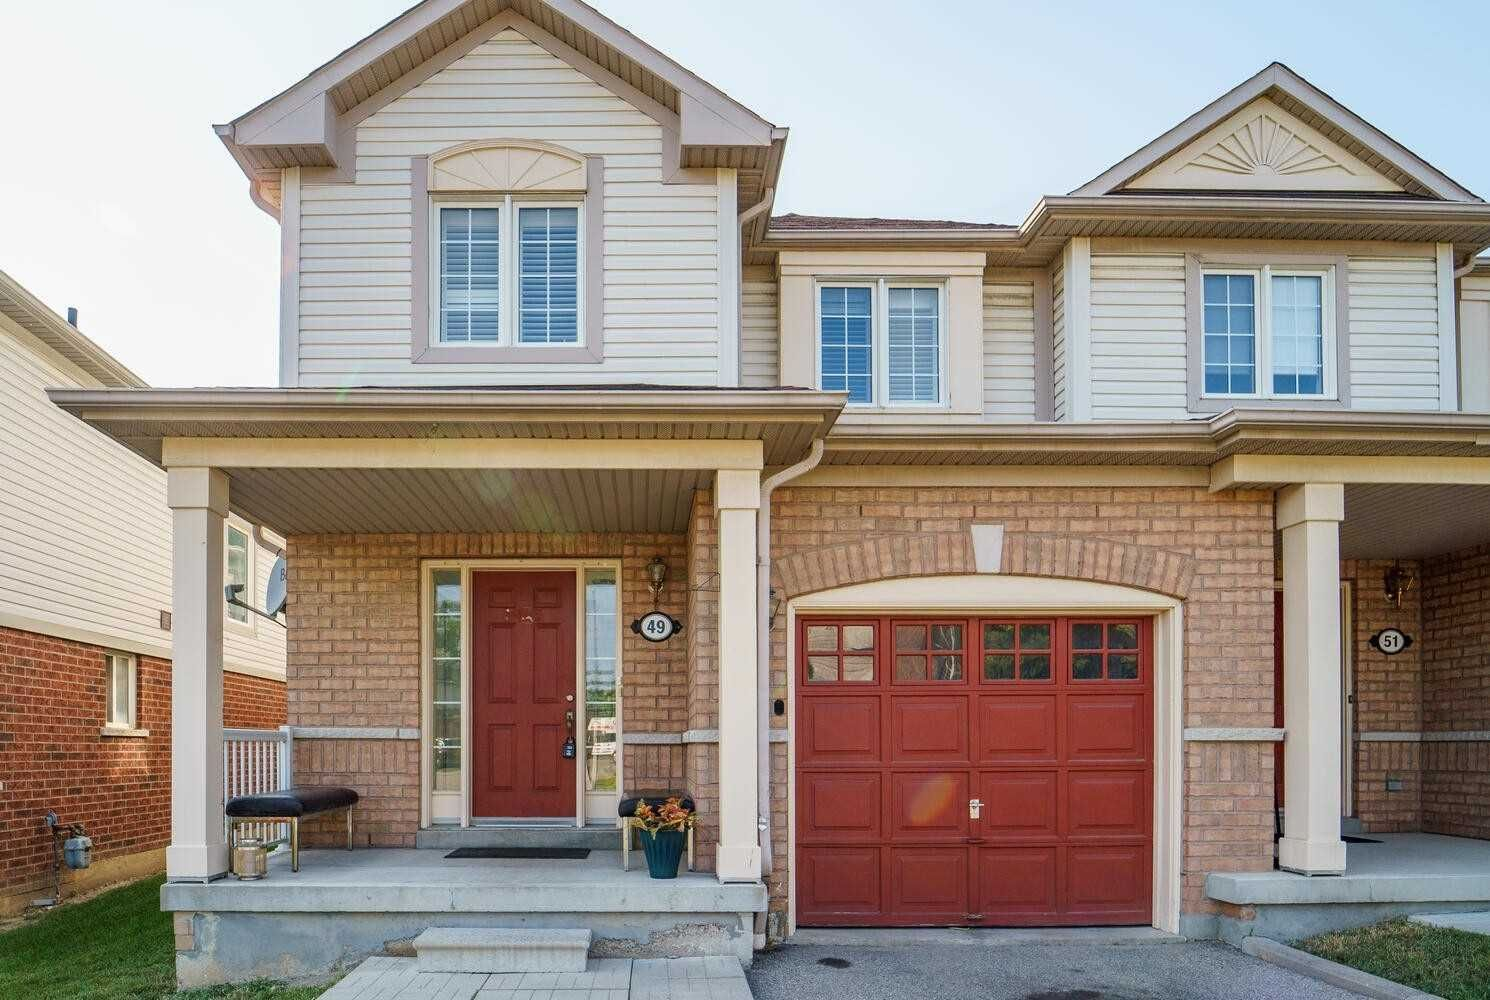 6035 Bidwell Tr, unit 49 for sale in Toronto - image #1